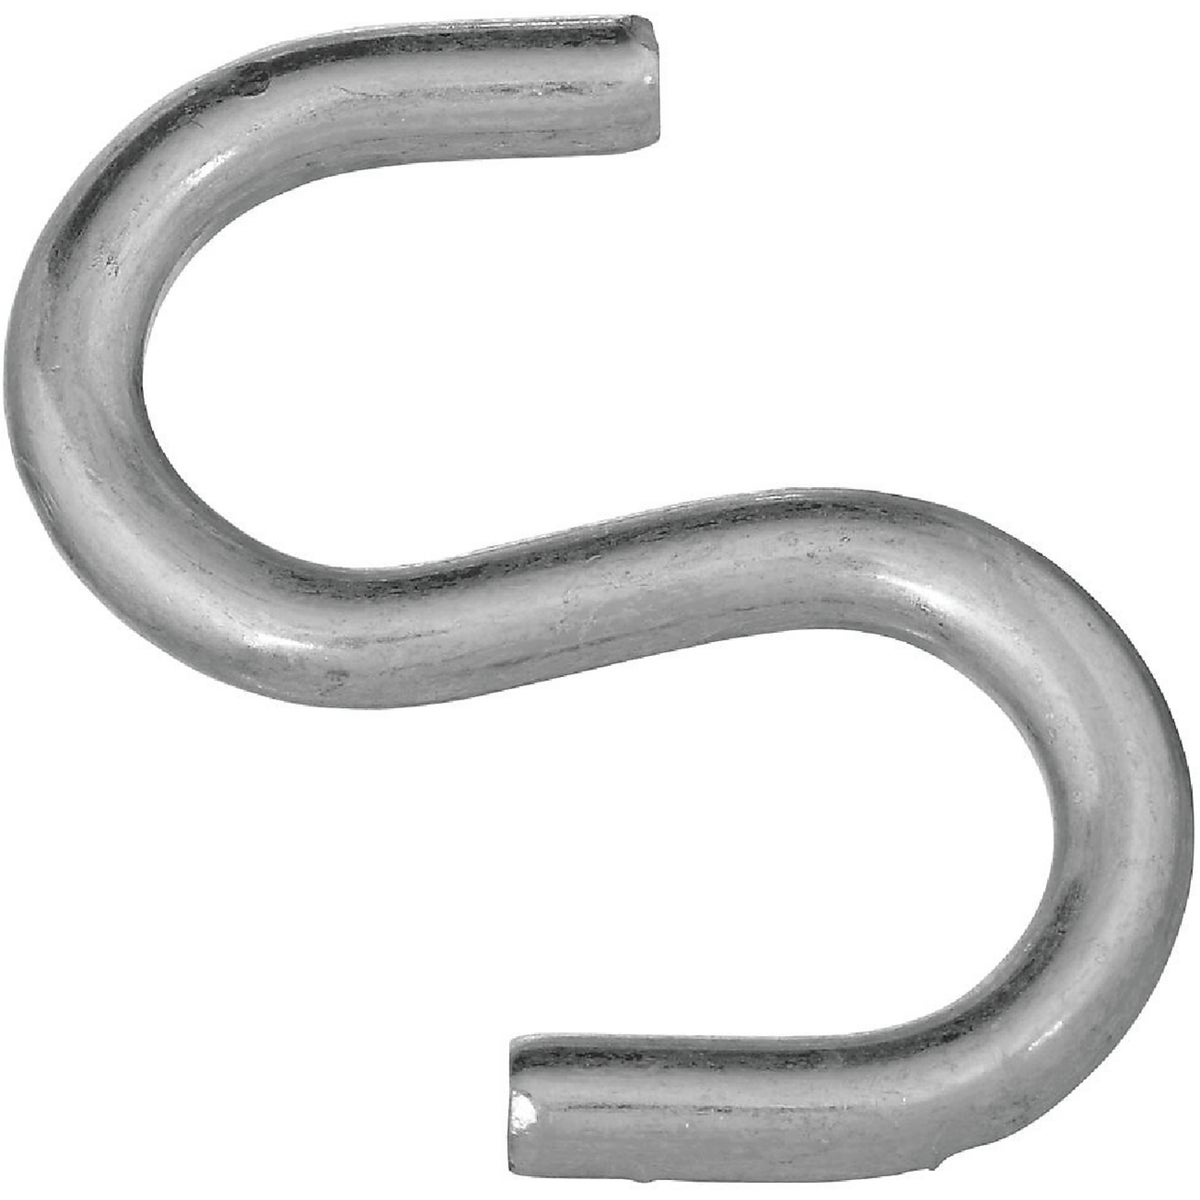 "3"" HEAVY OPEN S HOOK - N273441 by National Mfg Co"